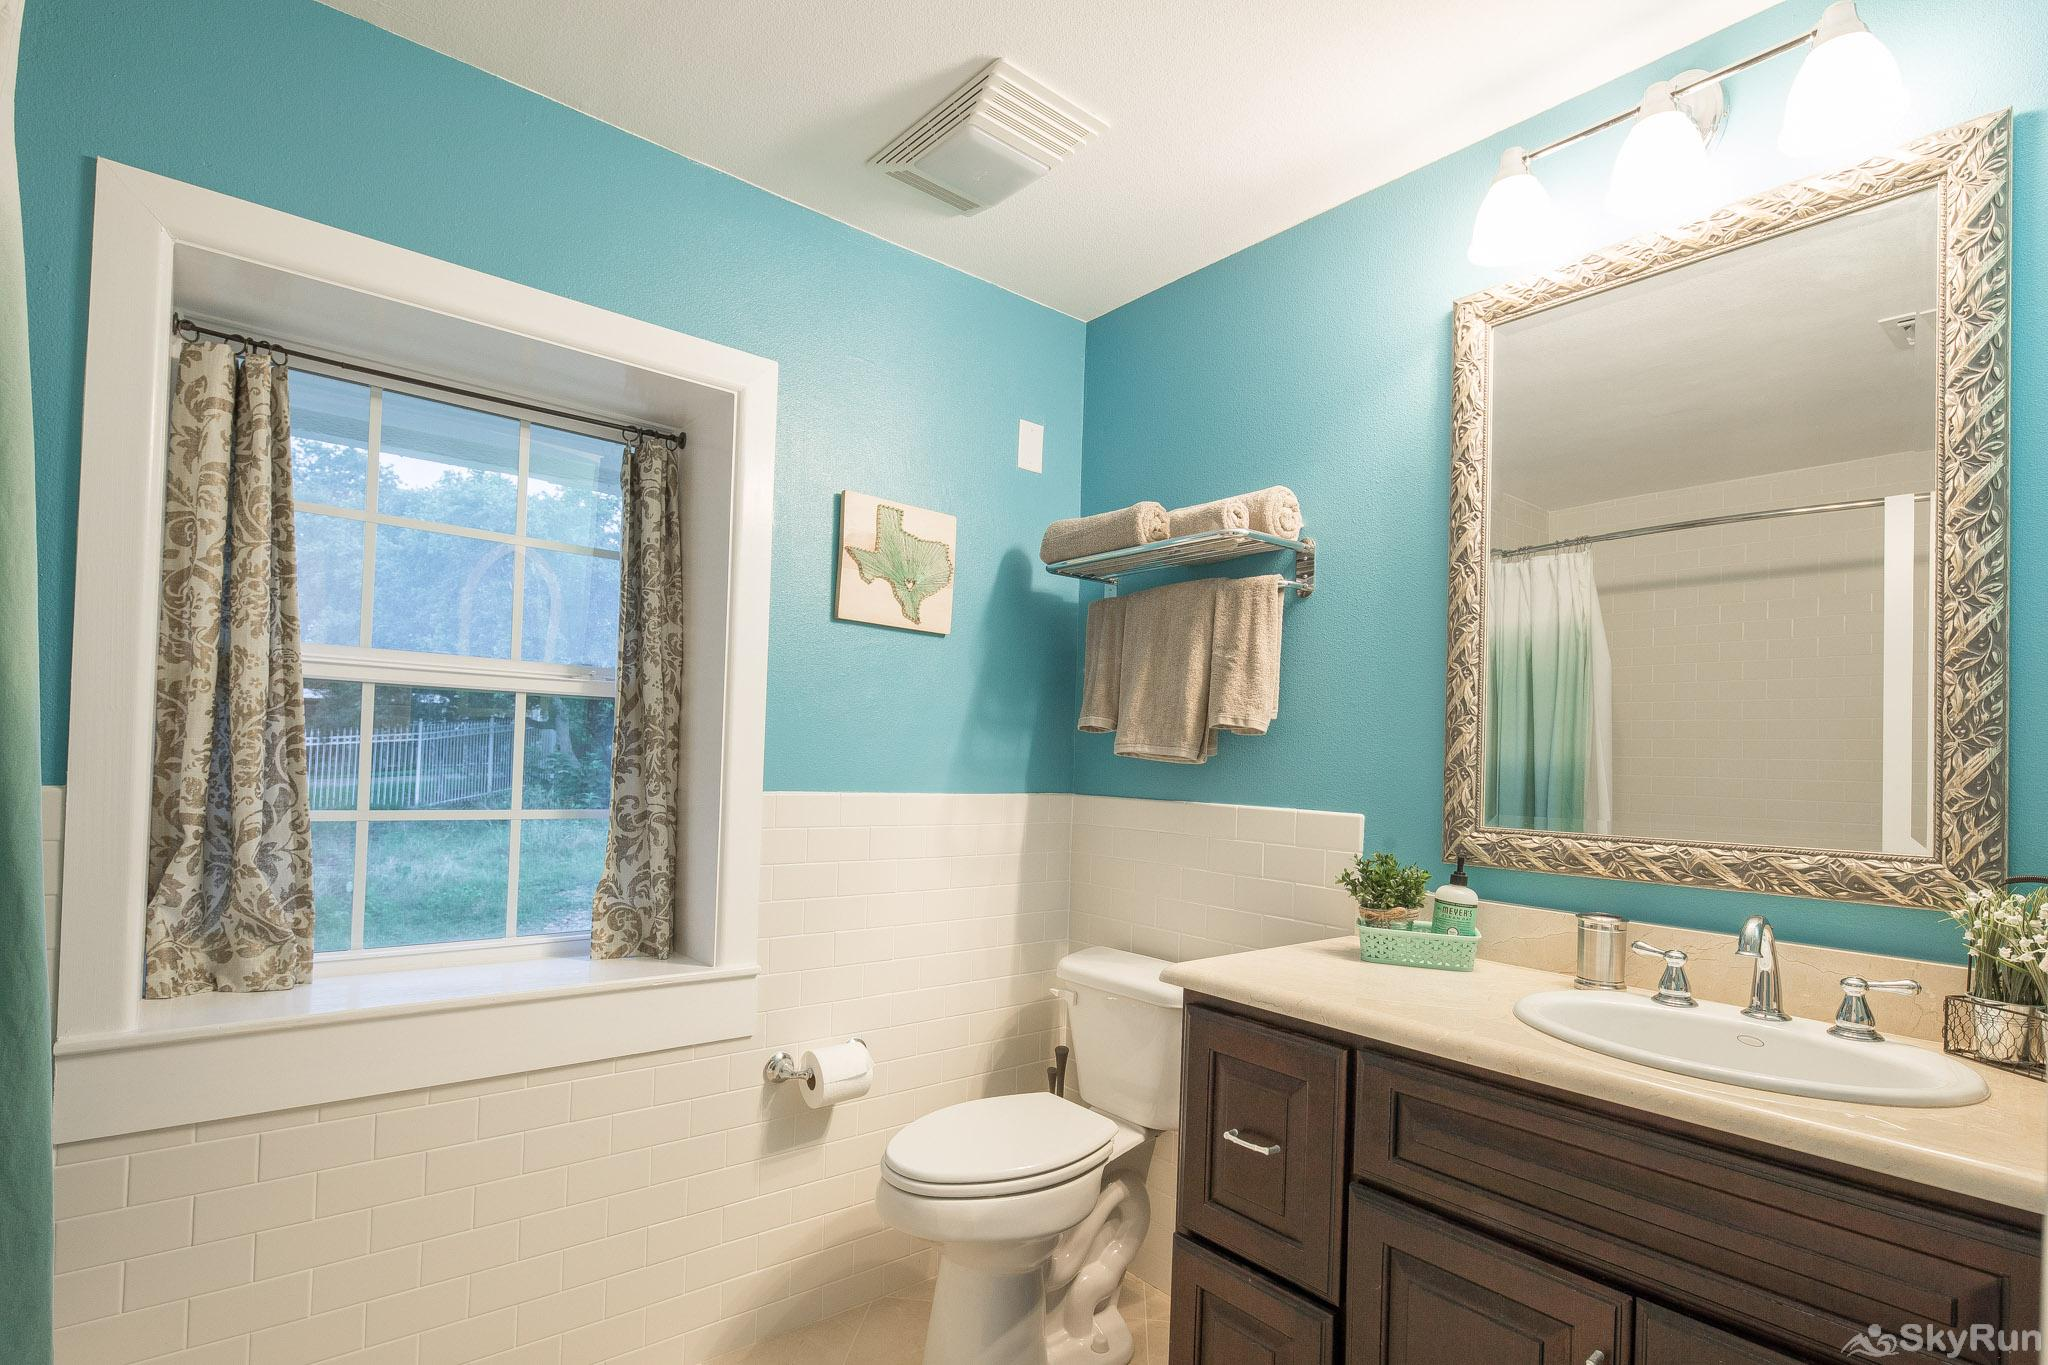 WATERFRONT GRACE First bathroom with shower/tub combo